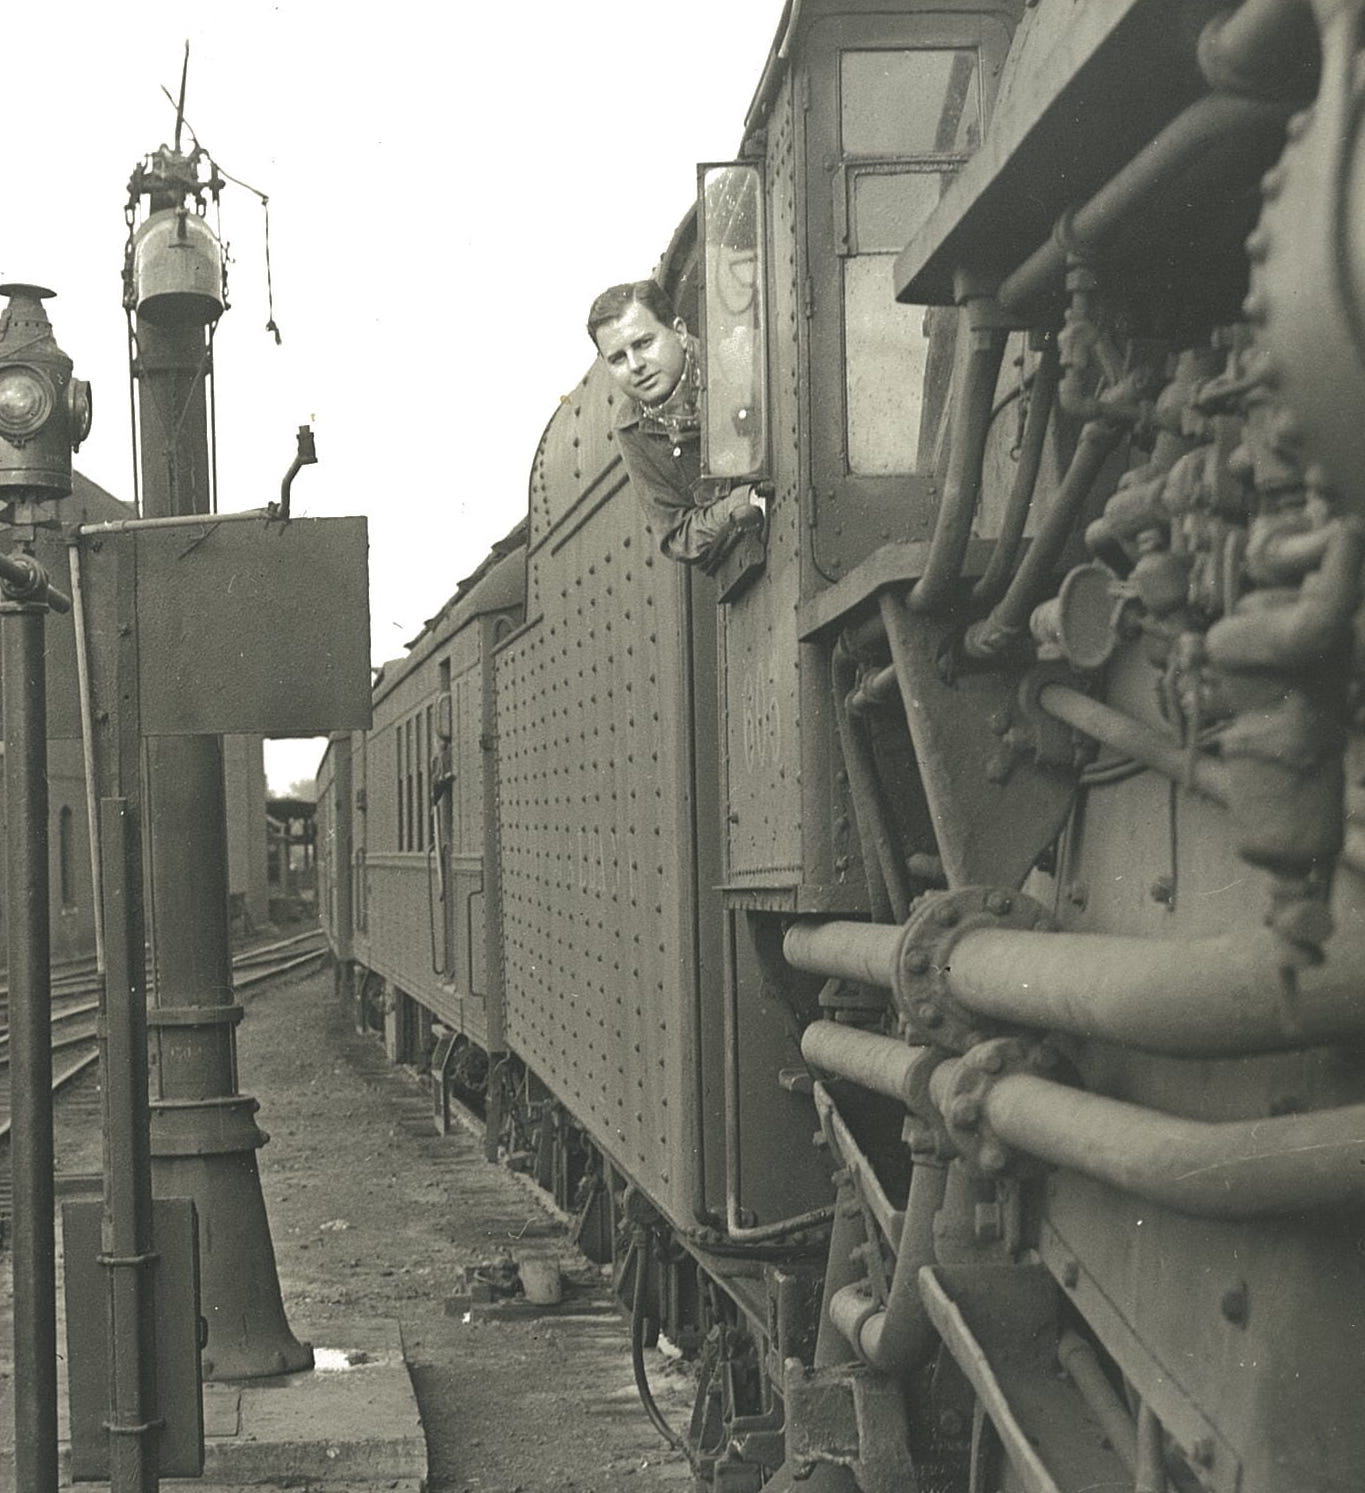 Billy Miles on a train, photo from the BTF archives.